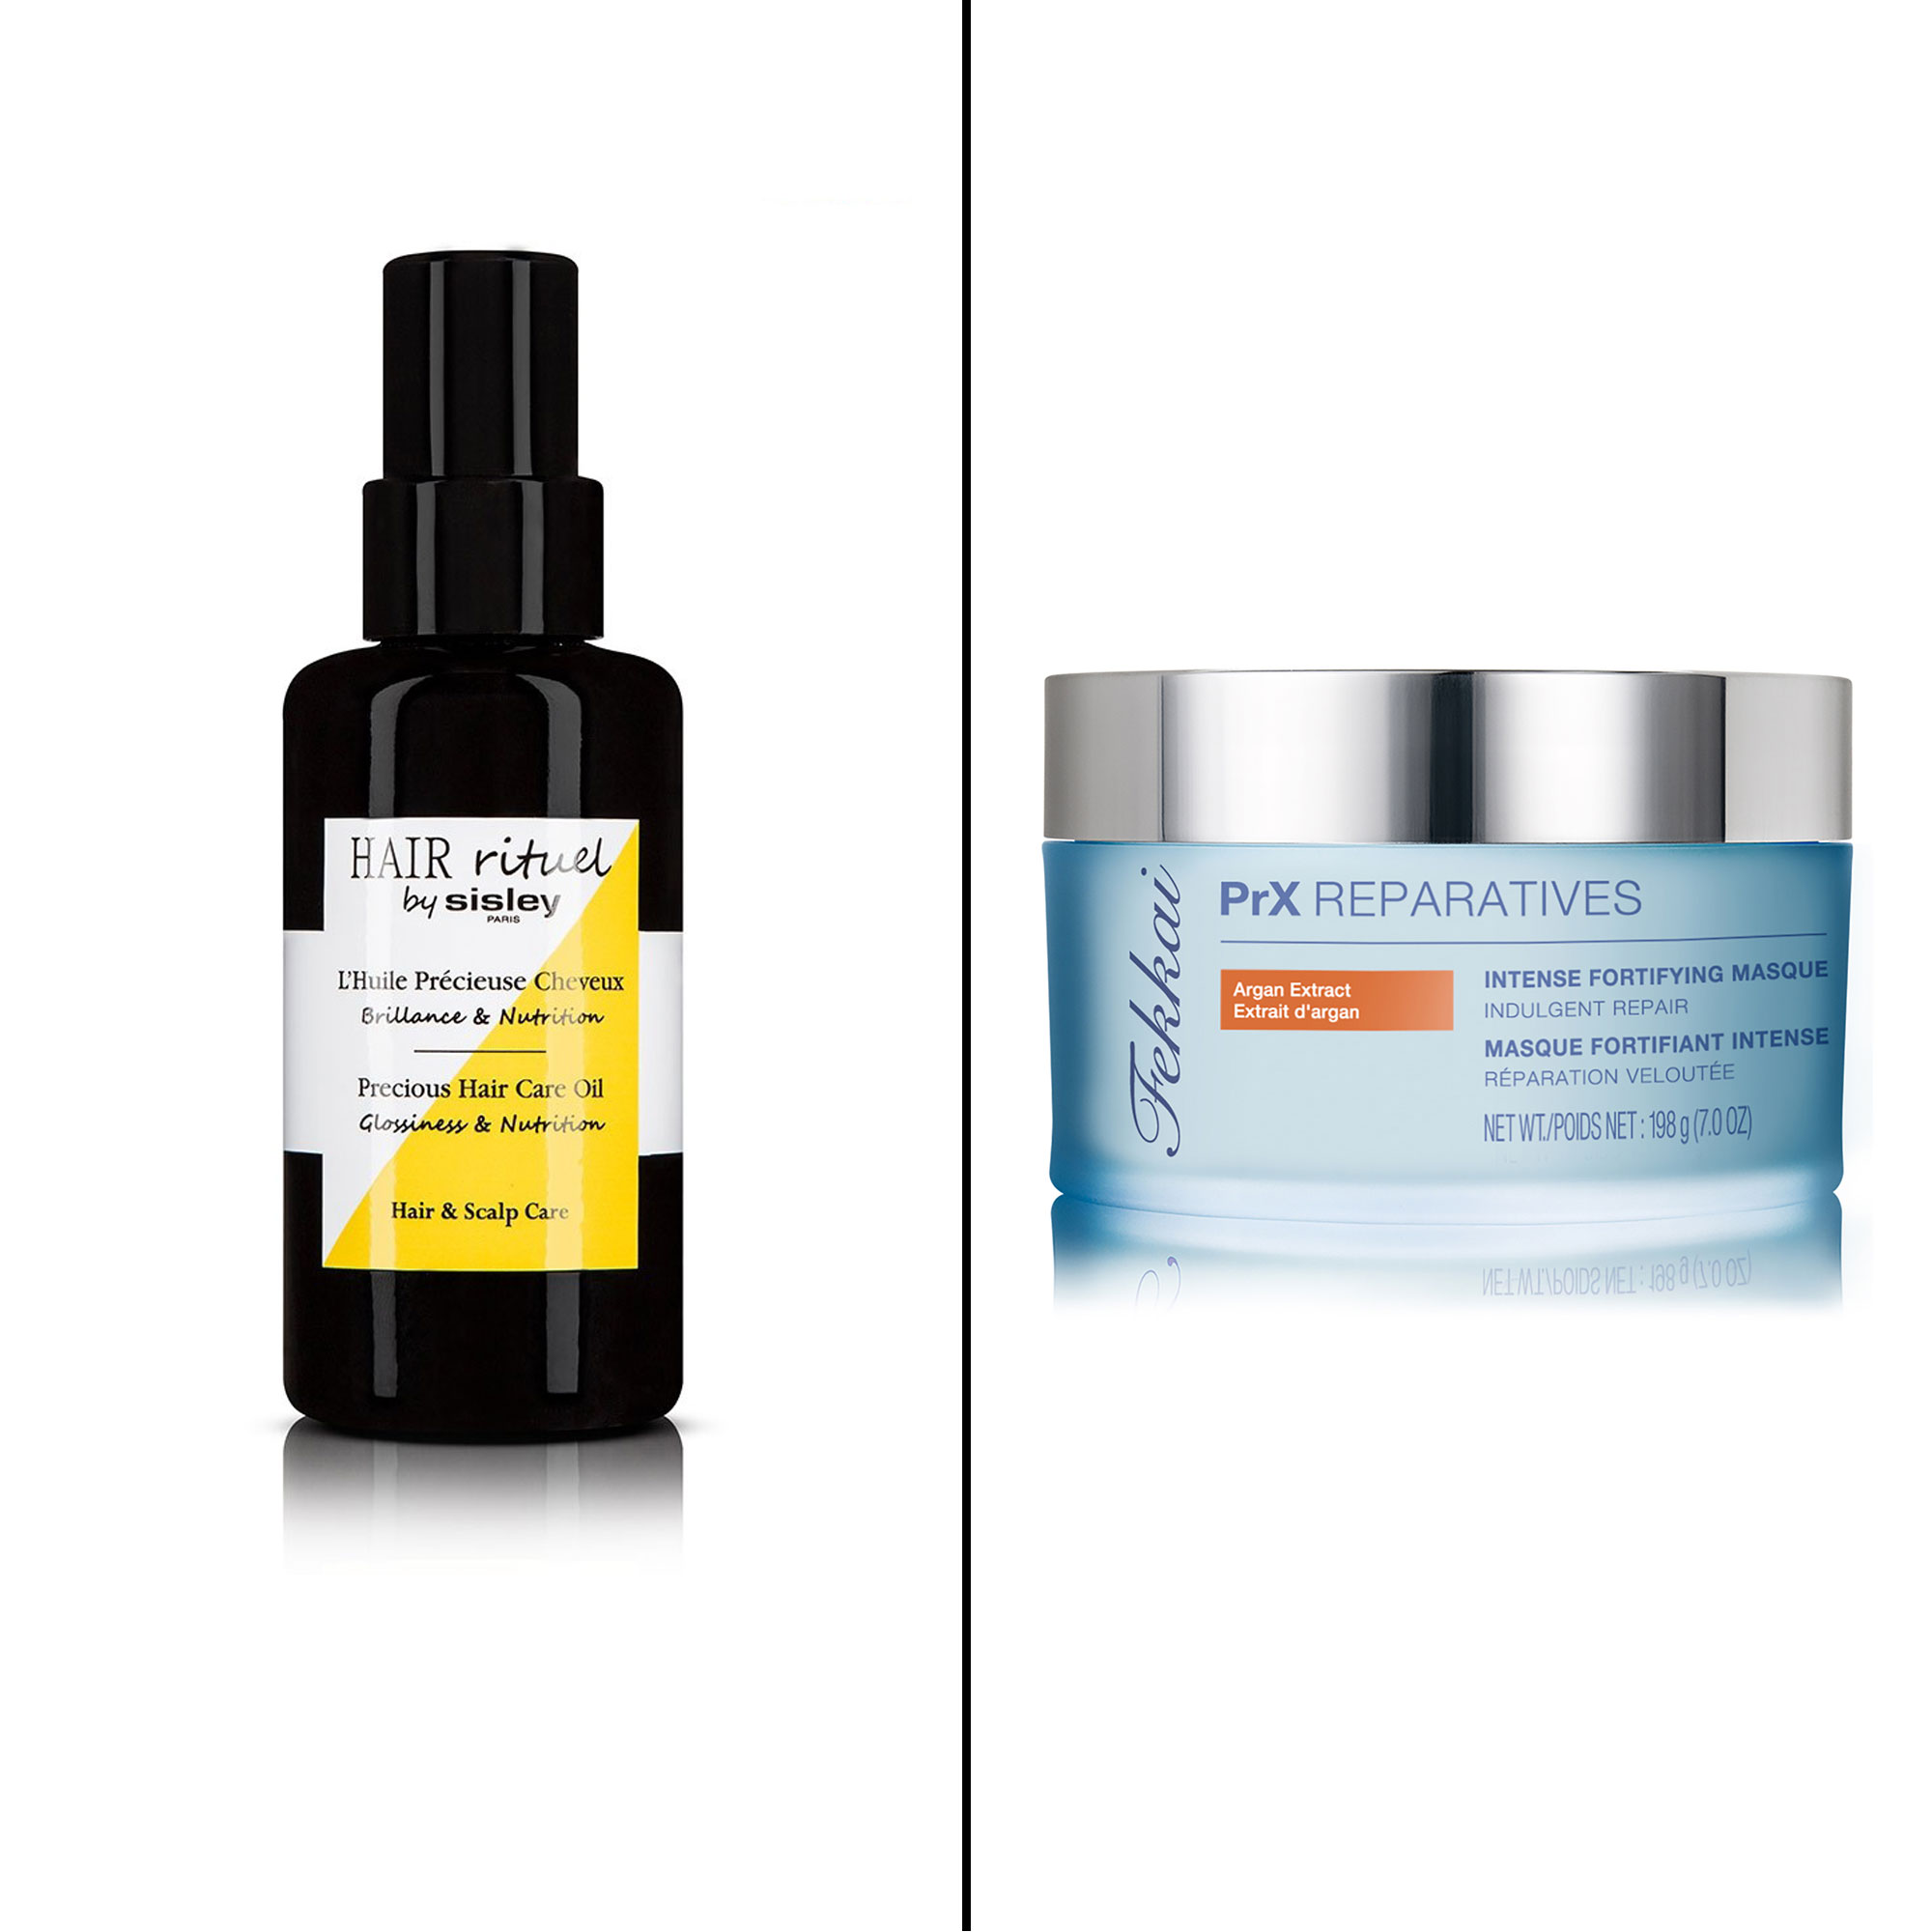 Splurge vs. Save: Salon-Worthy Hair Treatments For Every Type of Need - Splurge: Sisley Hair Rituel Precious Hair Care Oil Glossiness and Nutrition Just a small bit of this oil smooths and nourishes hair with good-for-it ingredients like shea, passion fruit and moringa oils. It's pricey, but it's worth it.